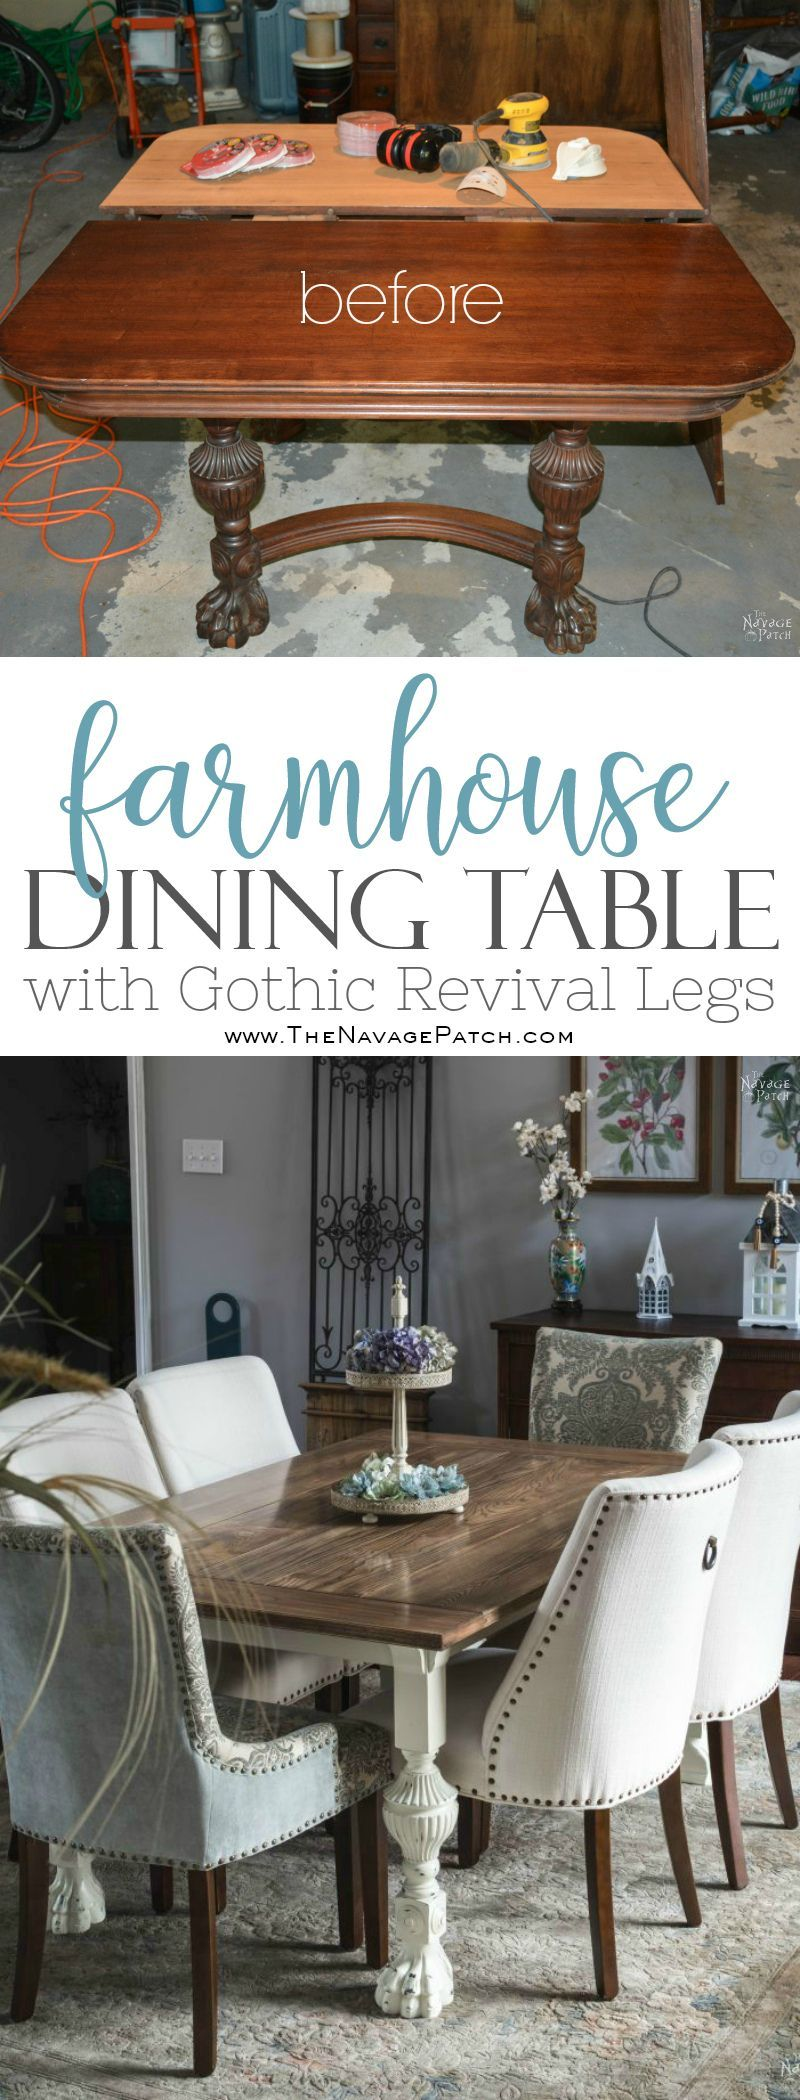 Farmhouse Dining Table With Gothic Revival Legs